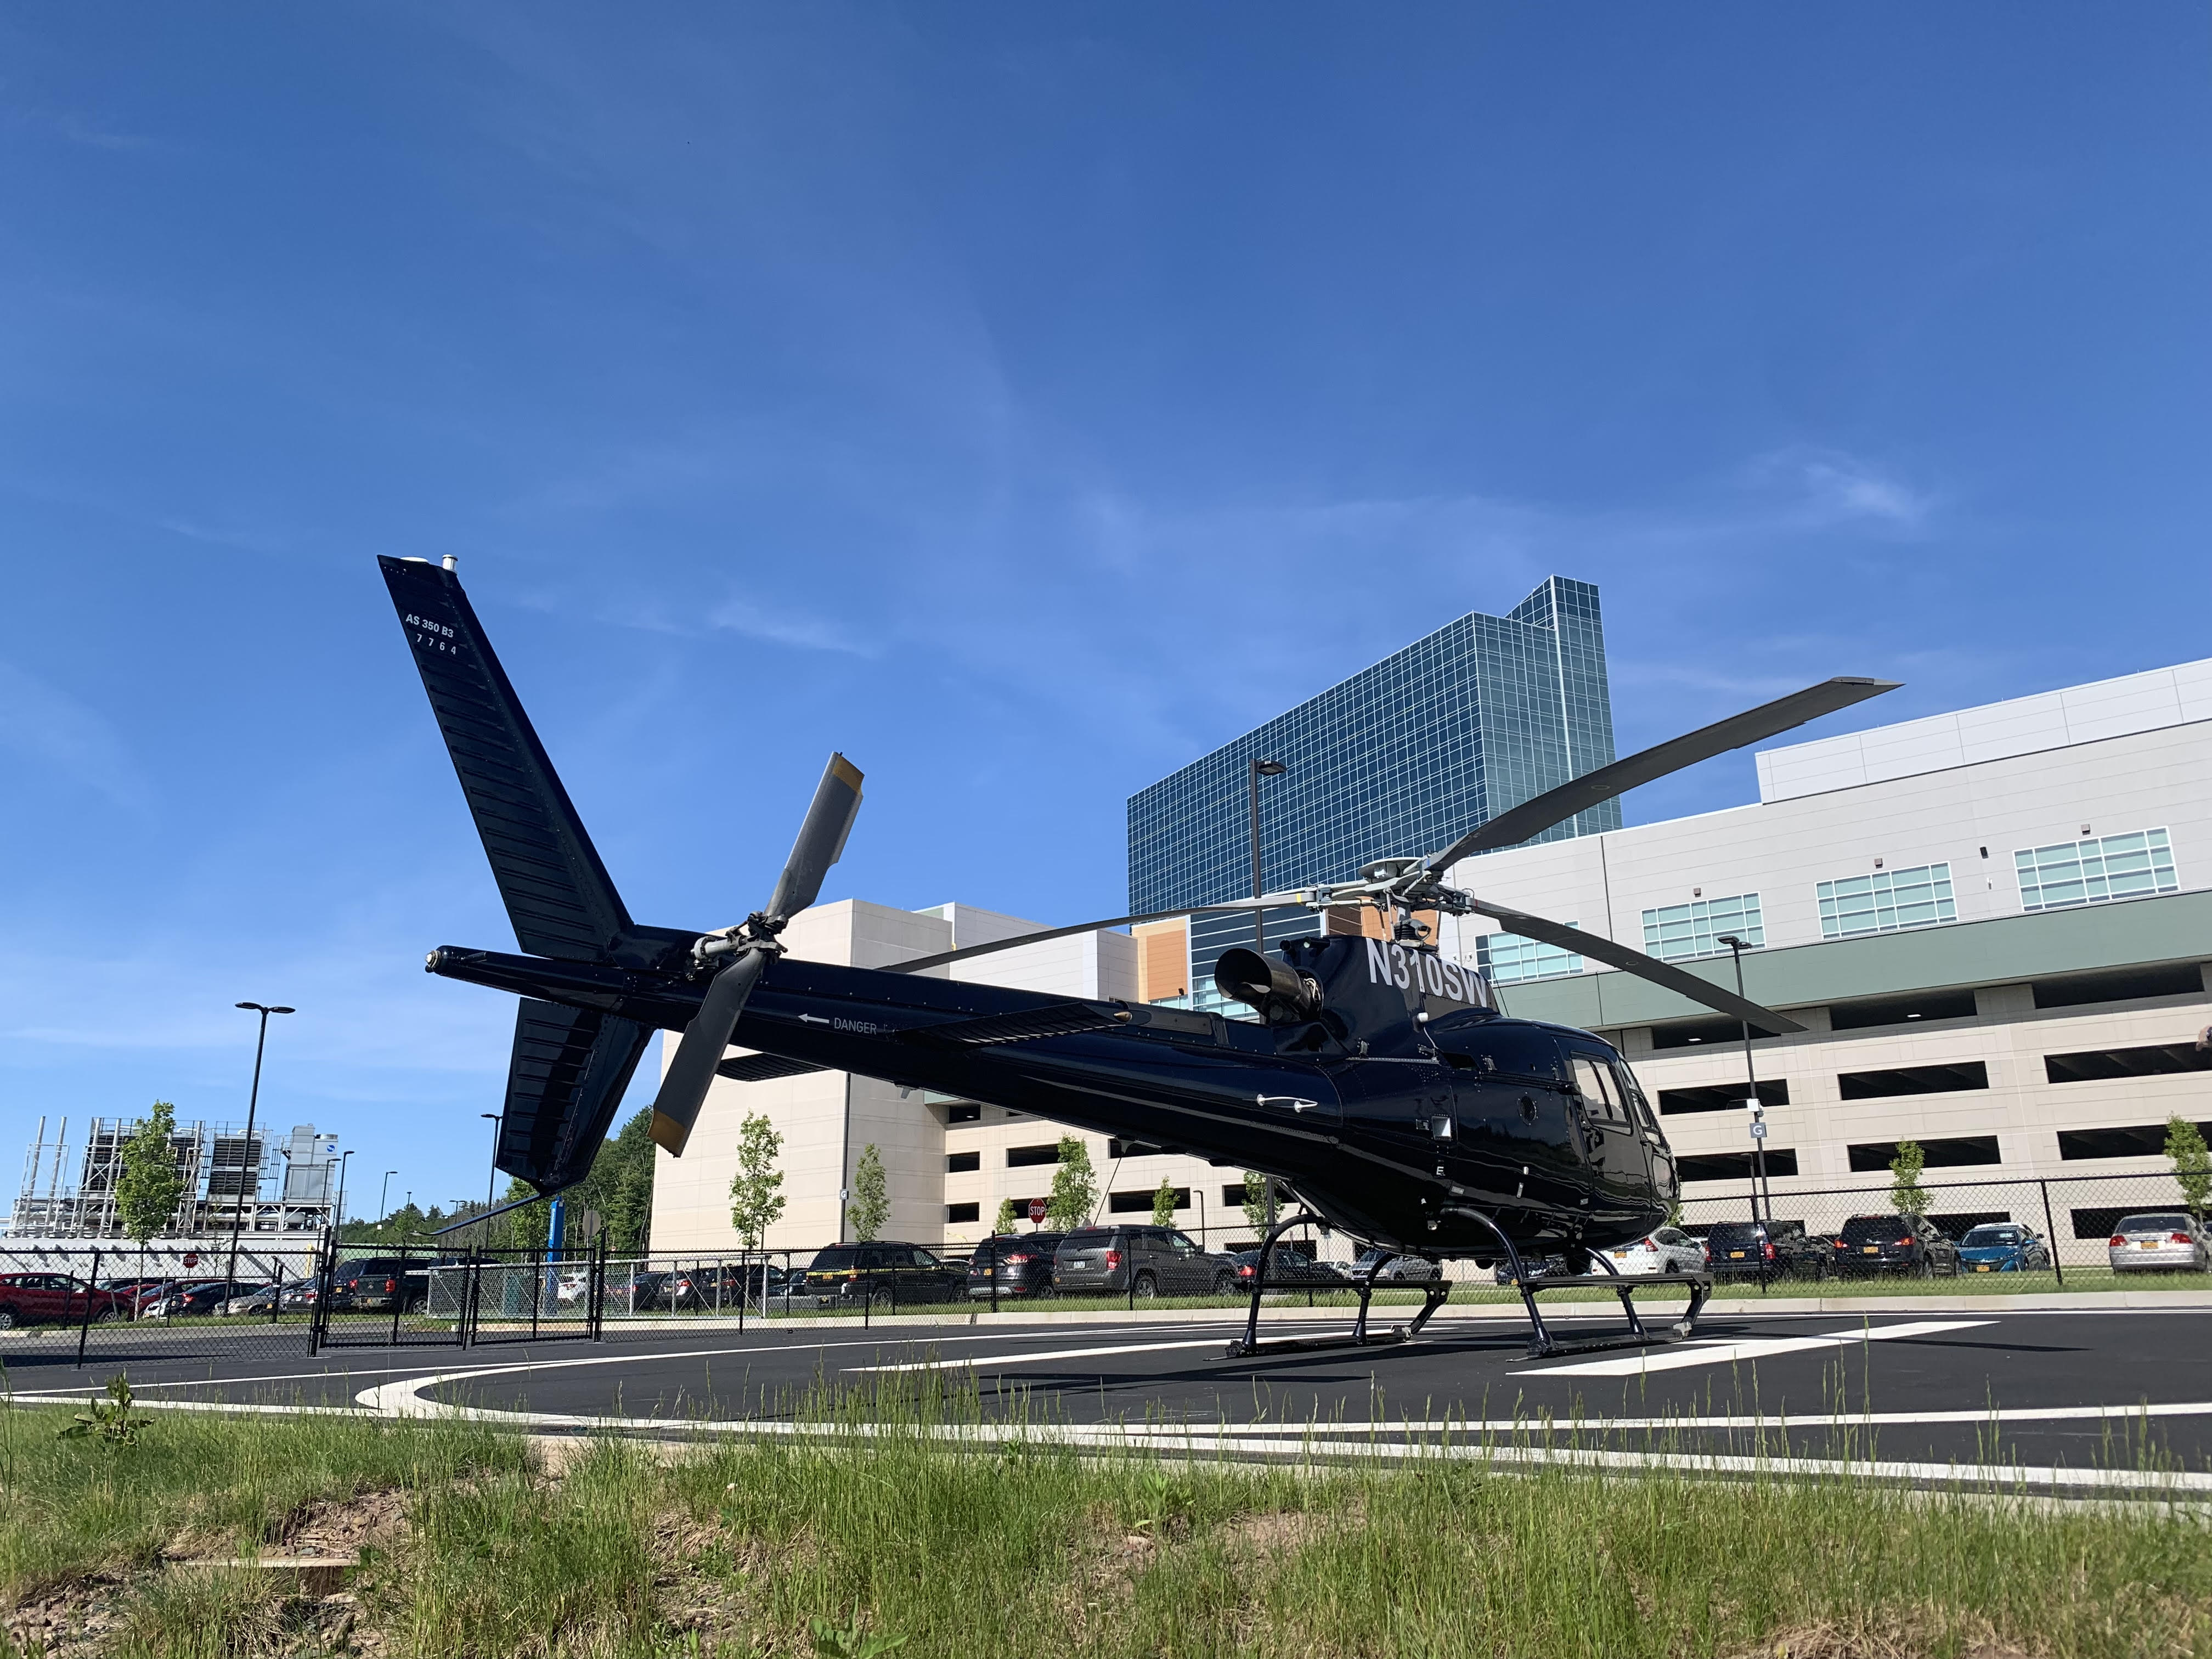 Astar Black helicopter getting ready for takeoff